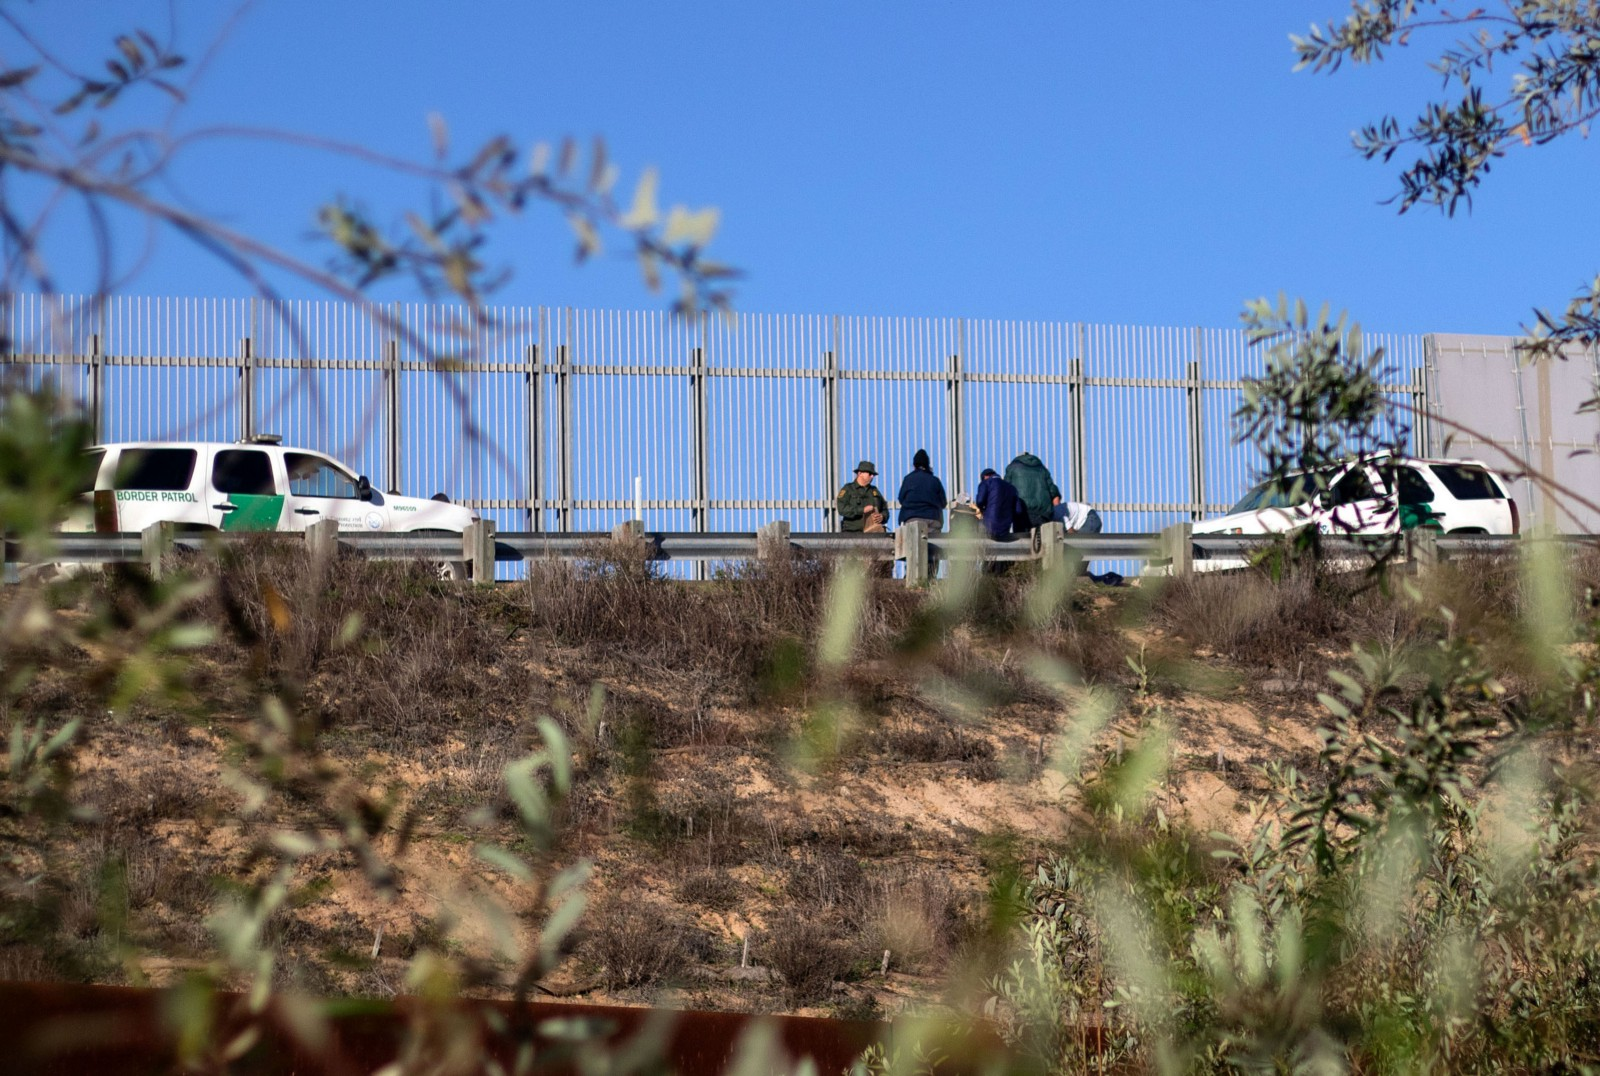 7 year old migrant girl taken into border patrol custody dies of dehydration exhaustion